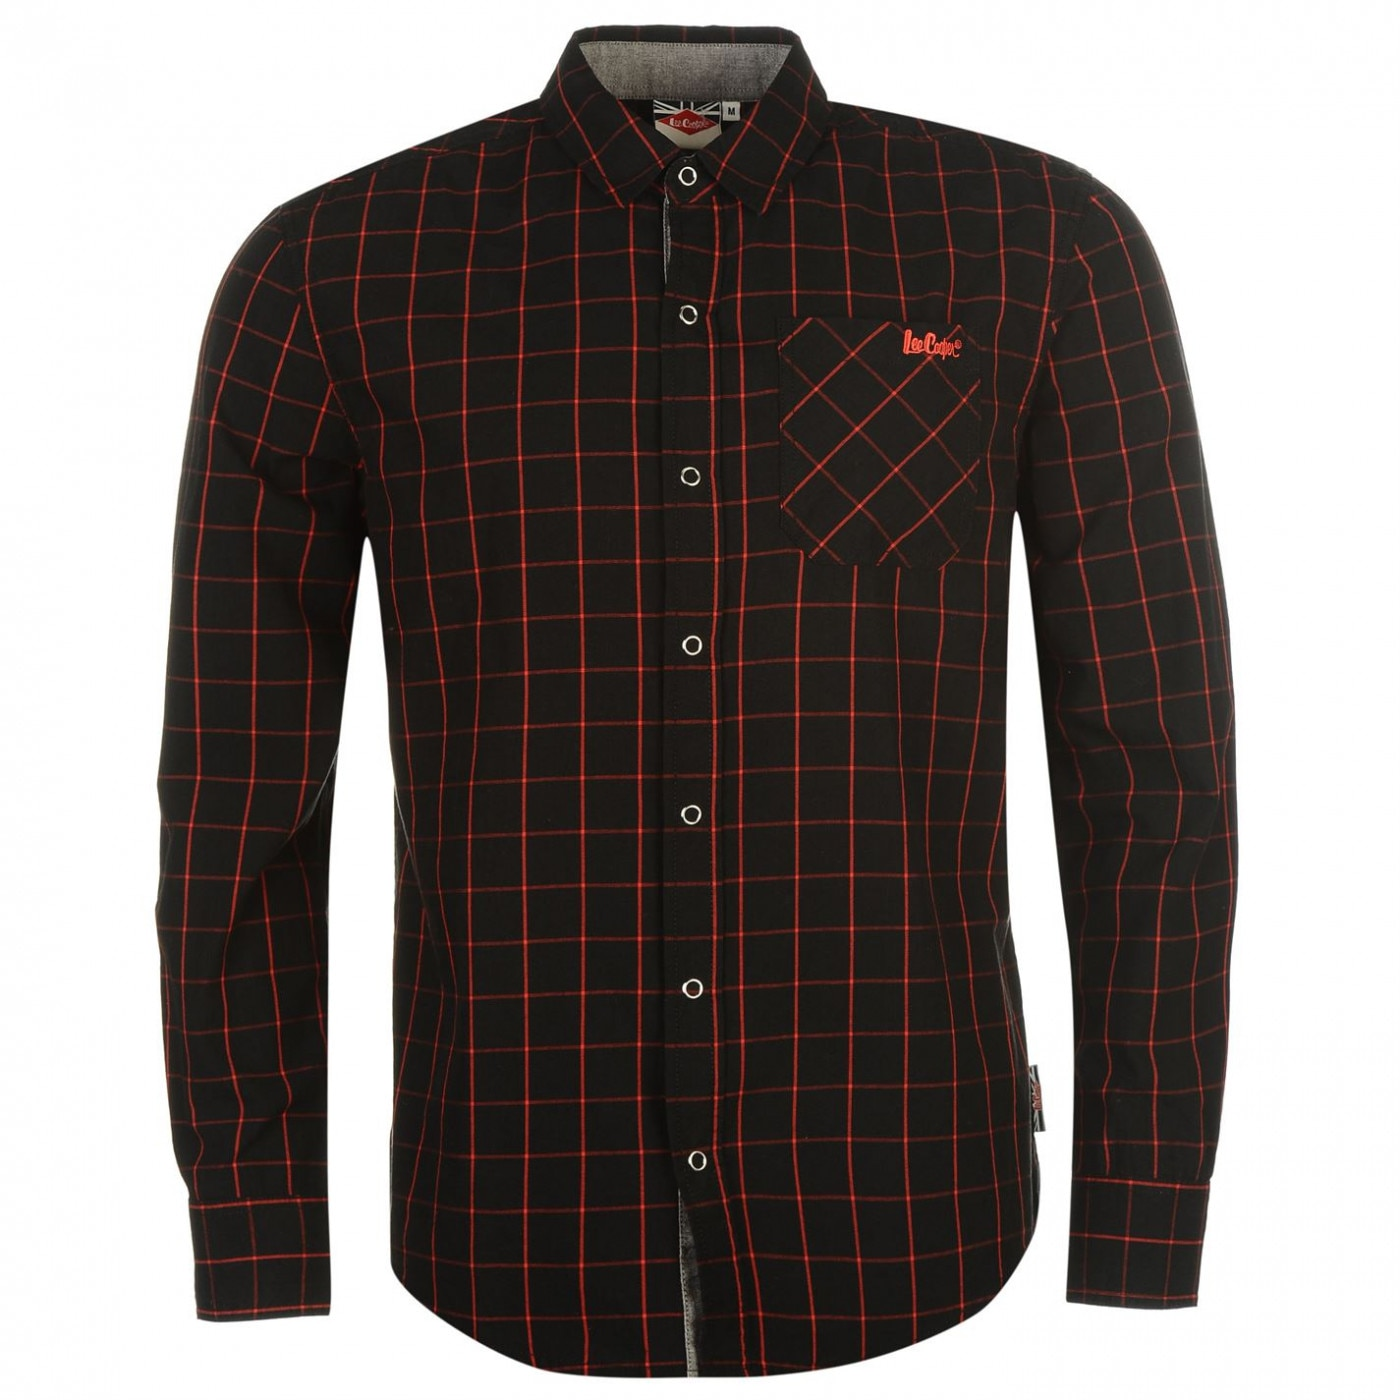 9ff0f25d440a Lee Cooper Long Sleeve Fashion Check Shirt Mens - FACTCOOL